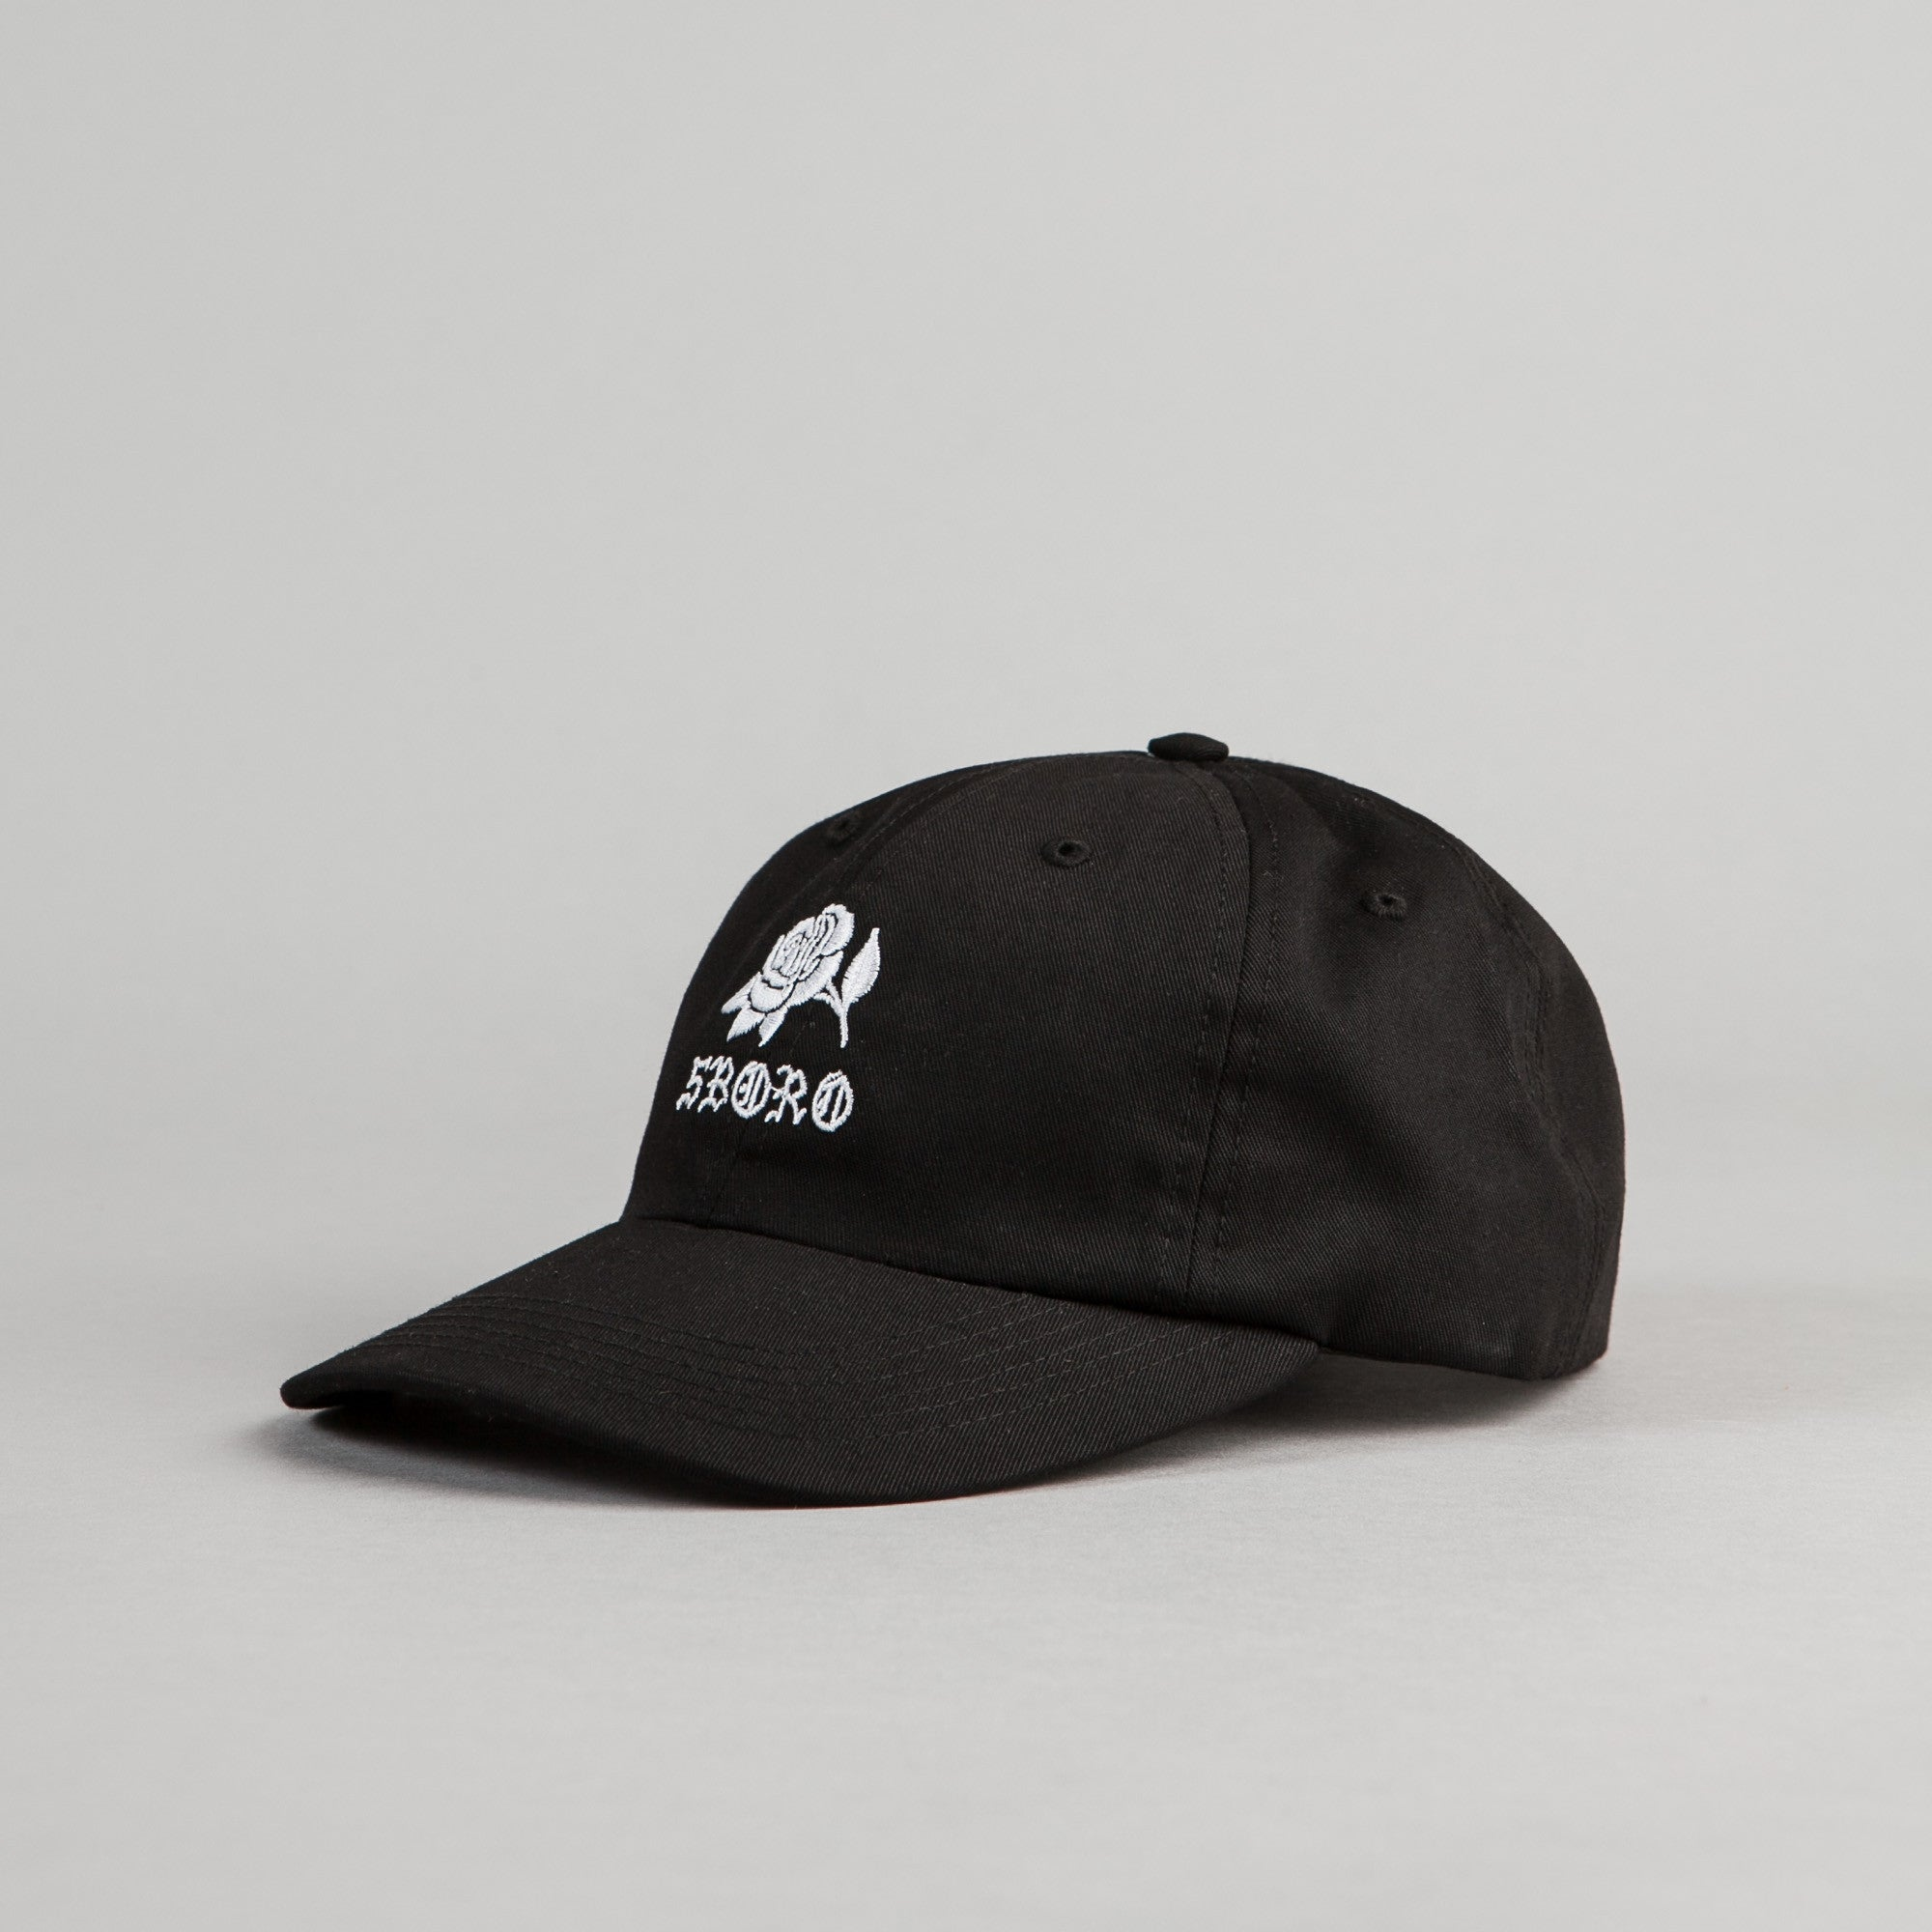 5Boro 5B Rose Six Panel Cap - Black